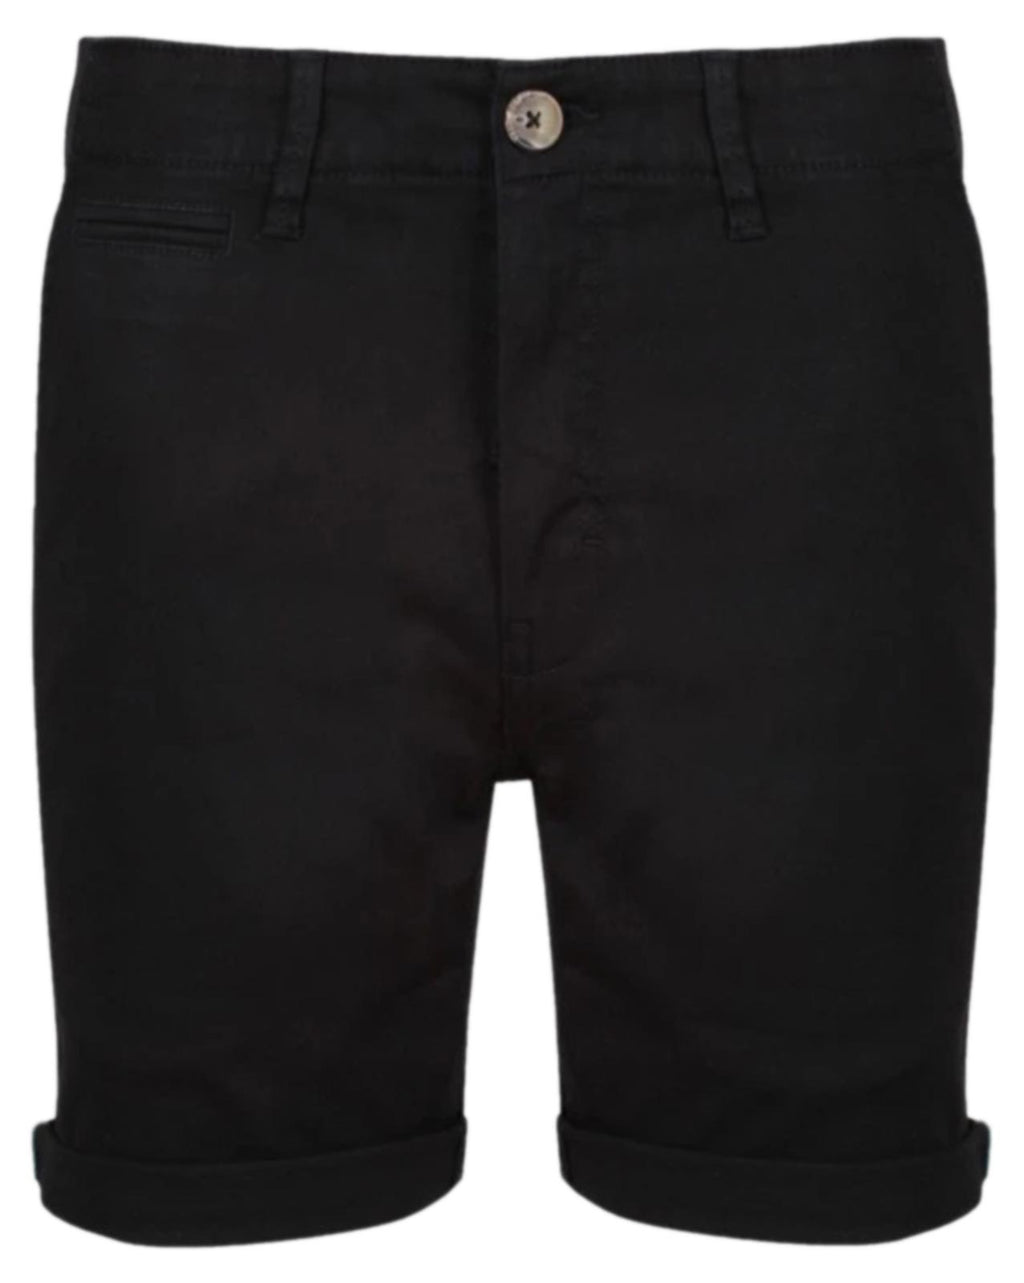 Luke 1977 Corblimey Chino Shorts Black